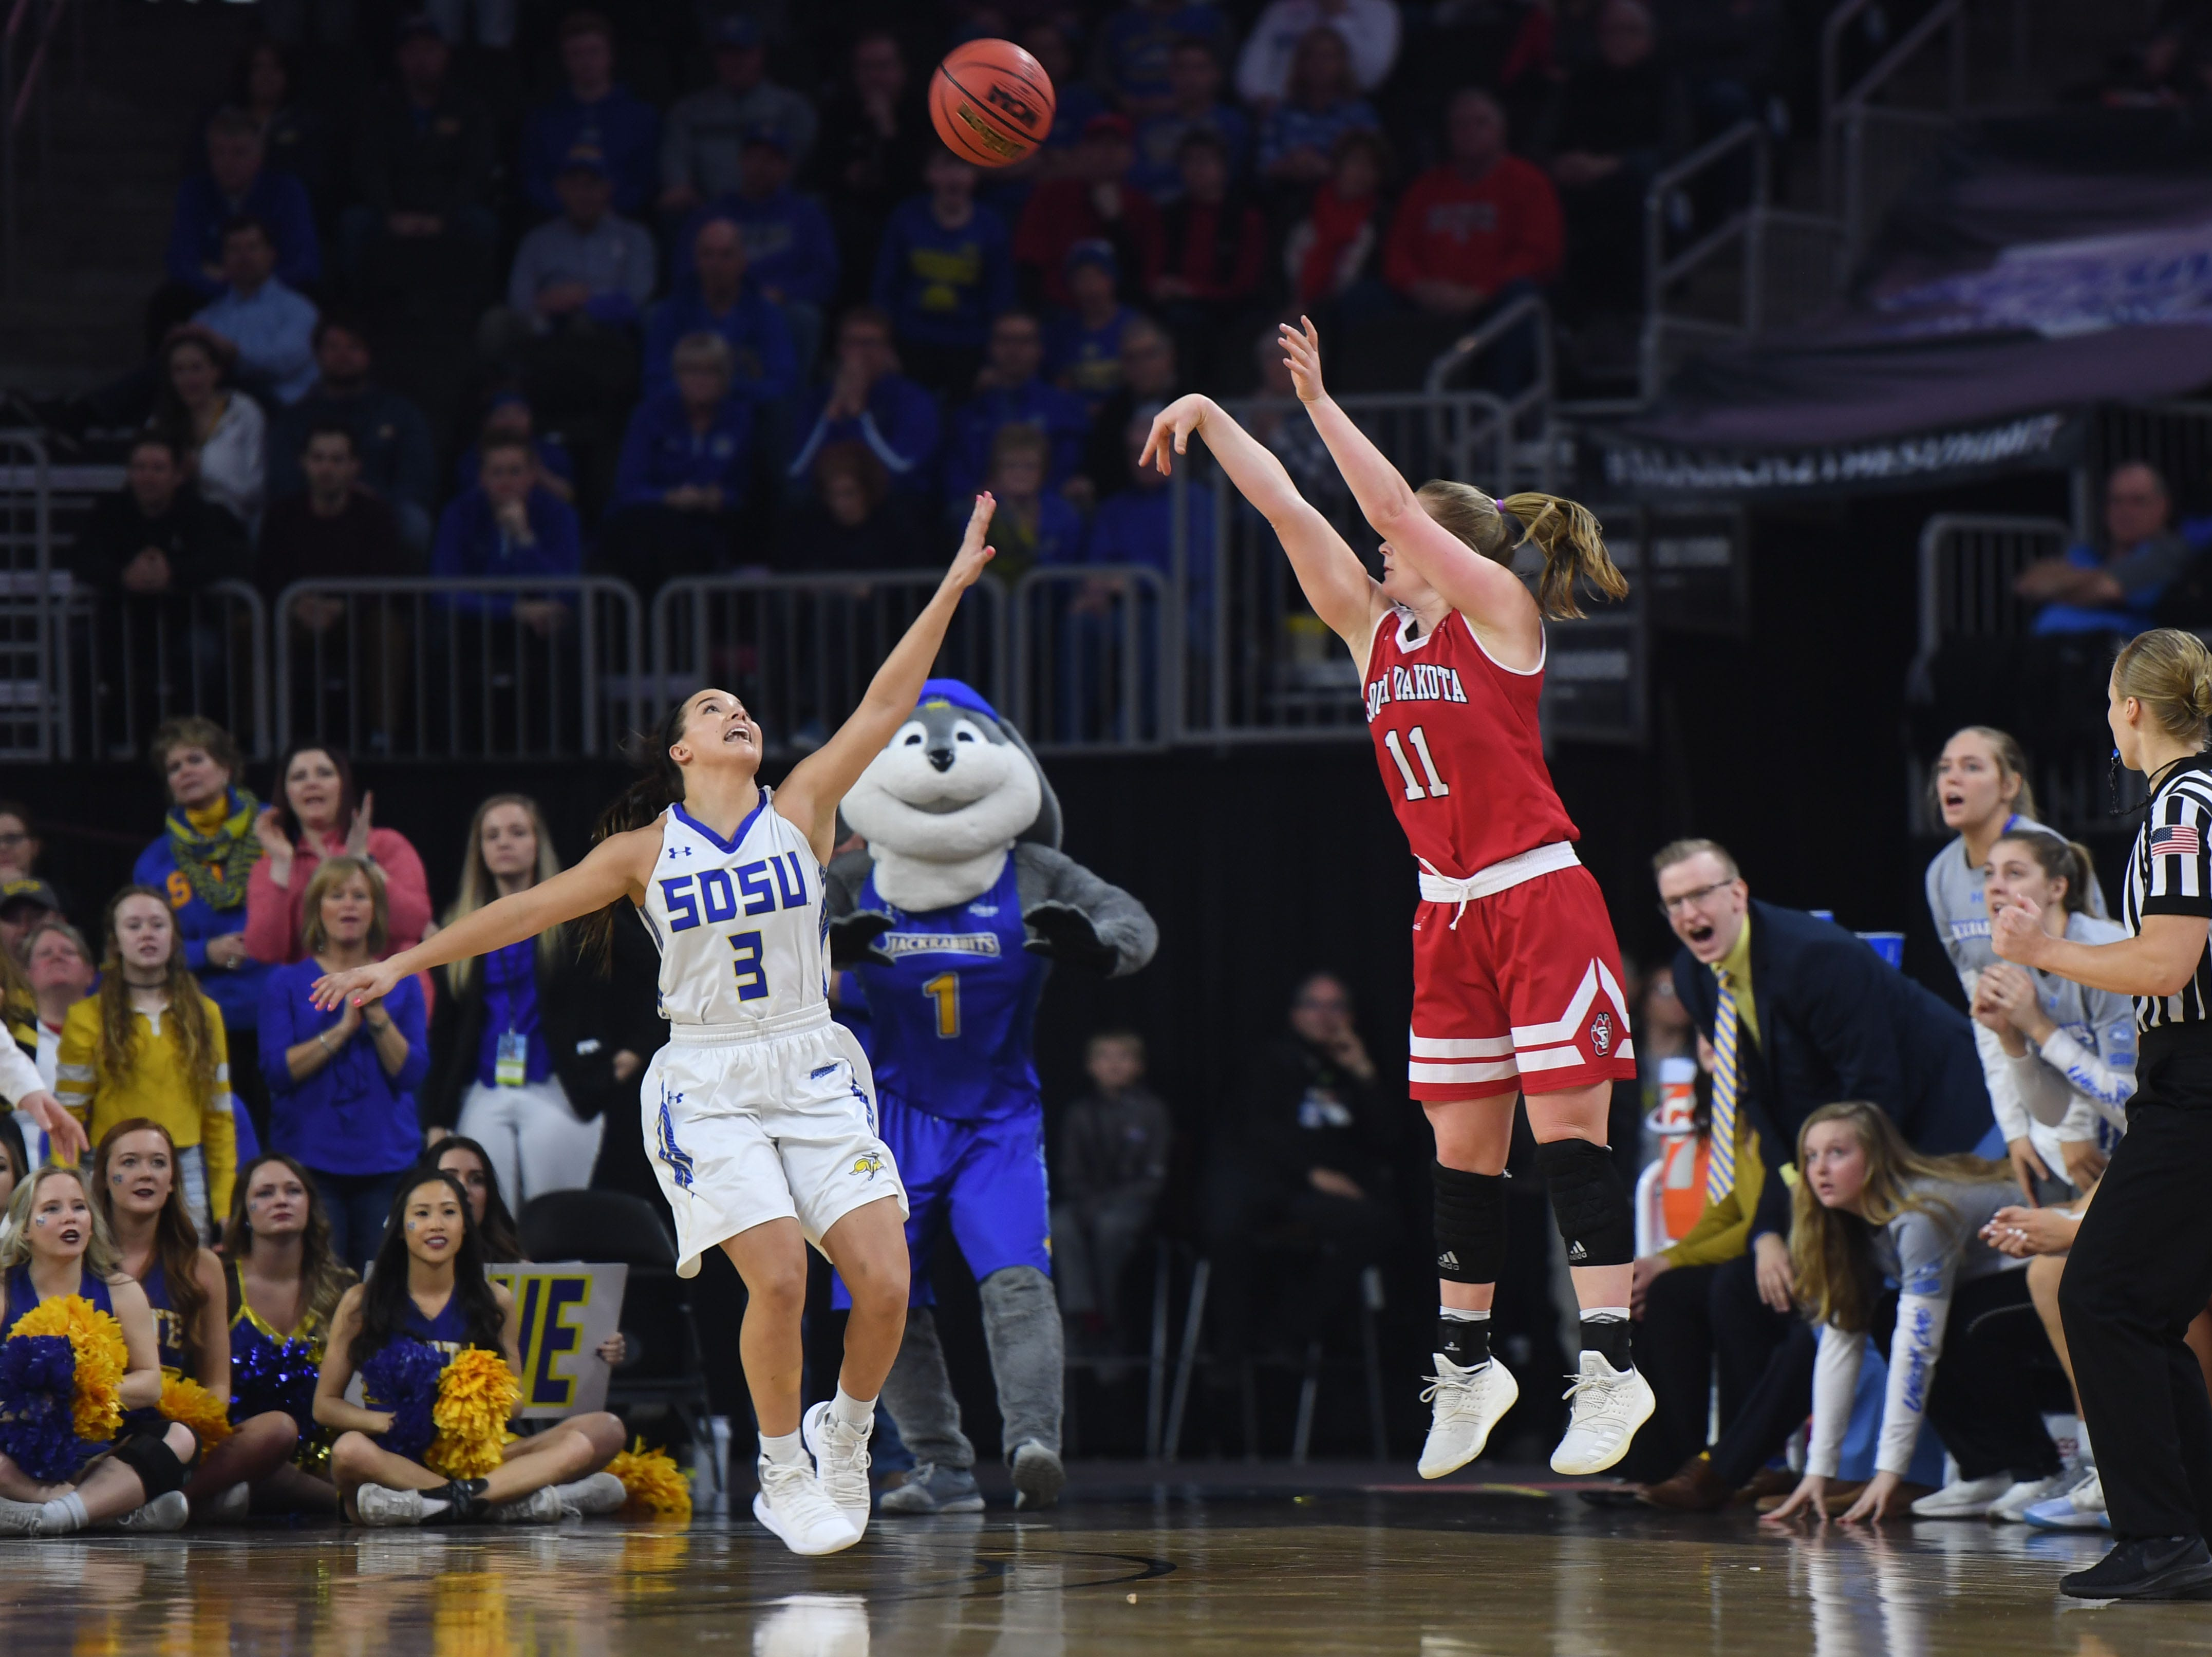 USD's Monica Arens takes a shot against SDSU's Lindsey Theuninck during the game Tuesday, March 12, in the Summit League women's championship at the Denny Sanford Premier Center in Sioux Falls.